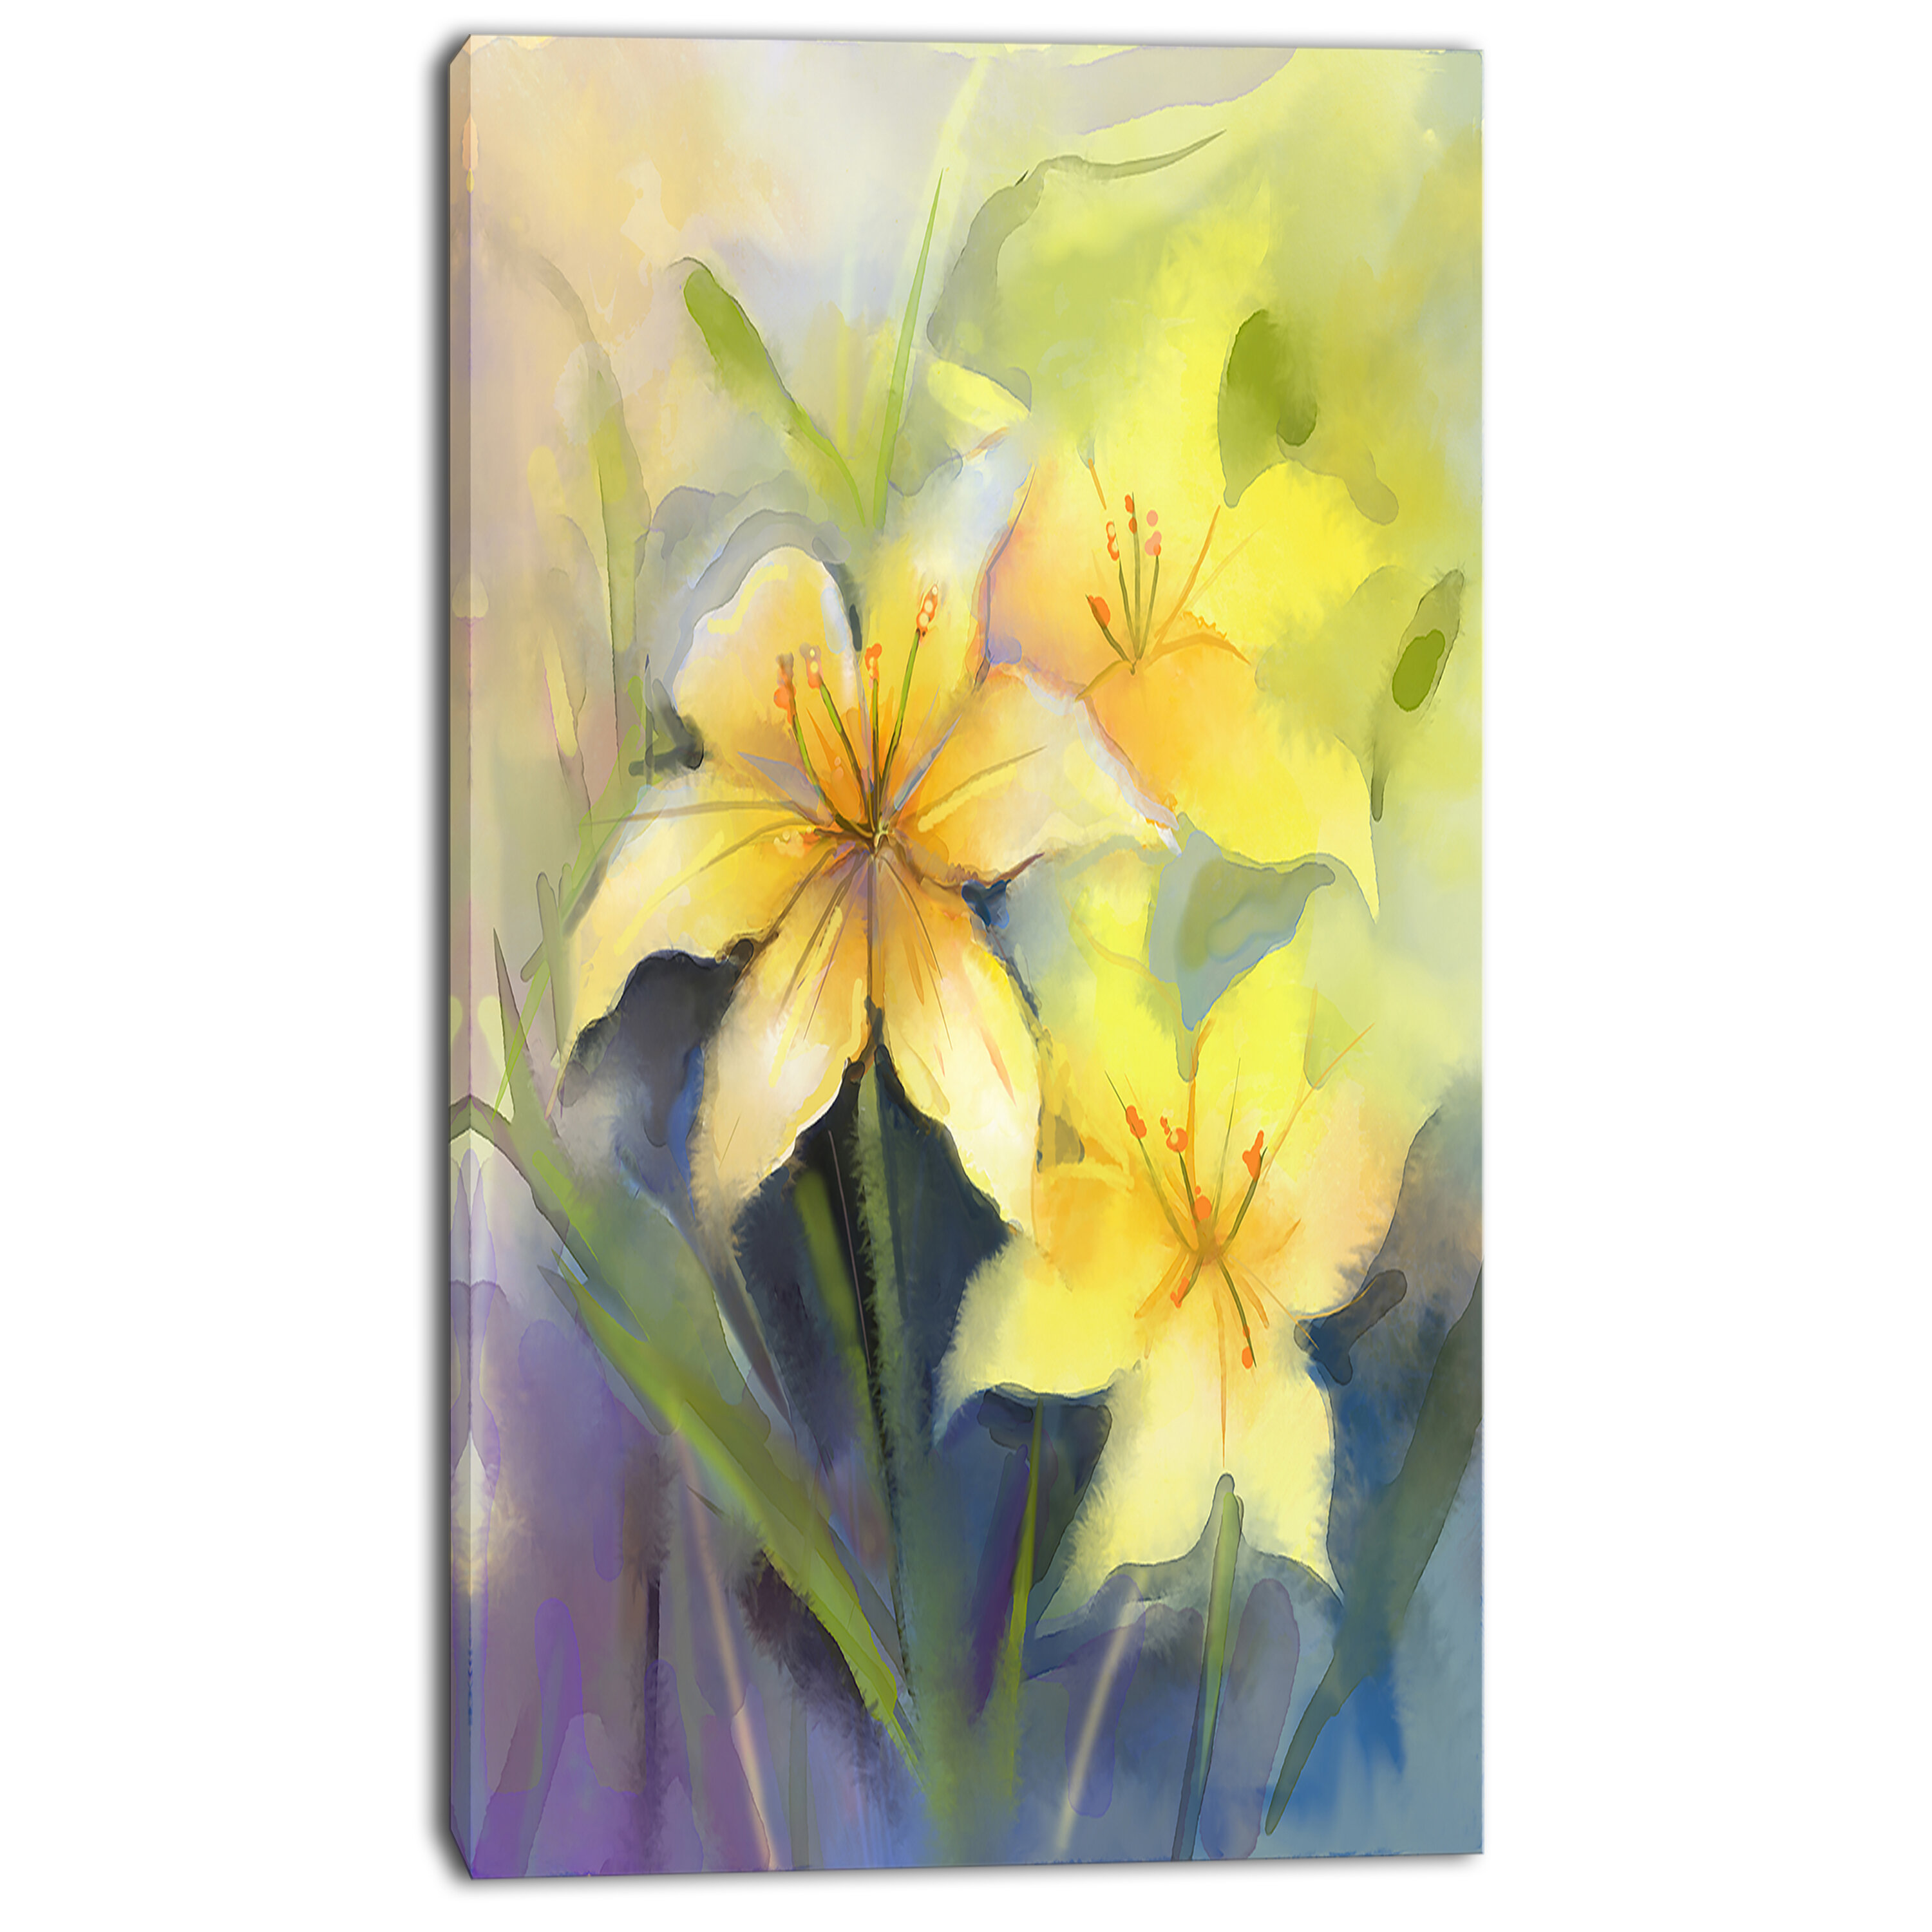 Designart Watercolor Painting Yellow Lily Flower Painting Print On Wrapped Canvas Wayfair